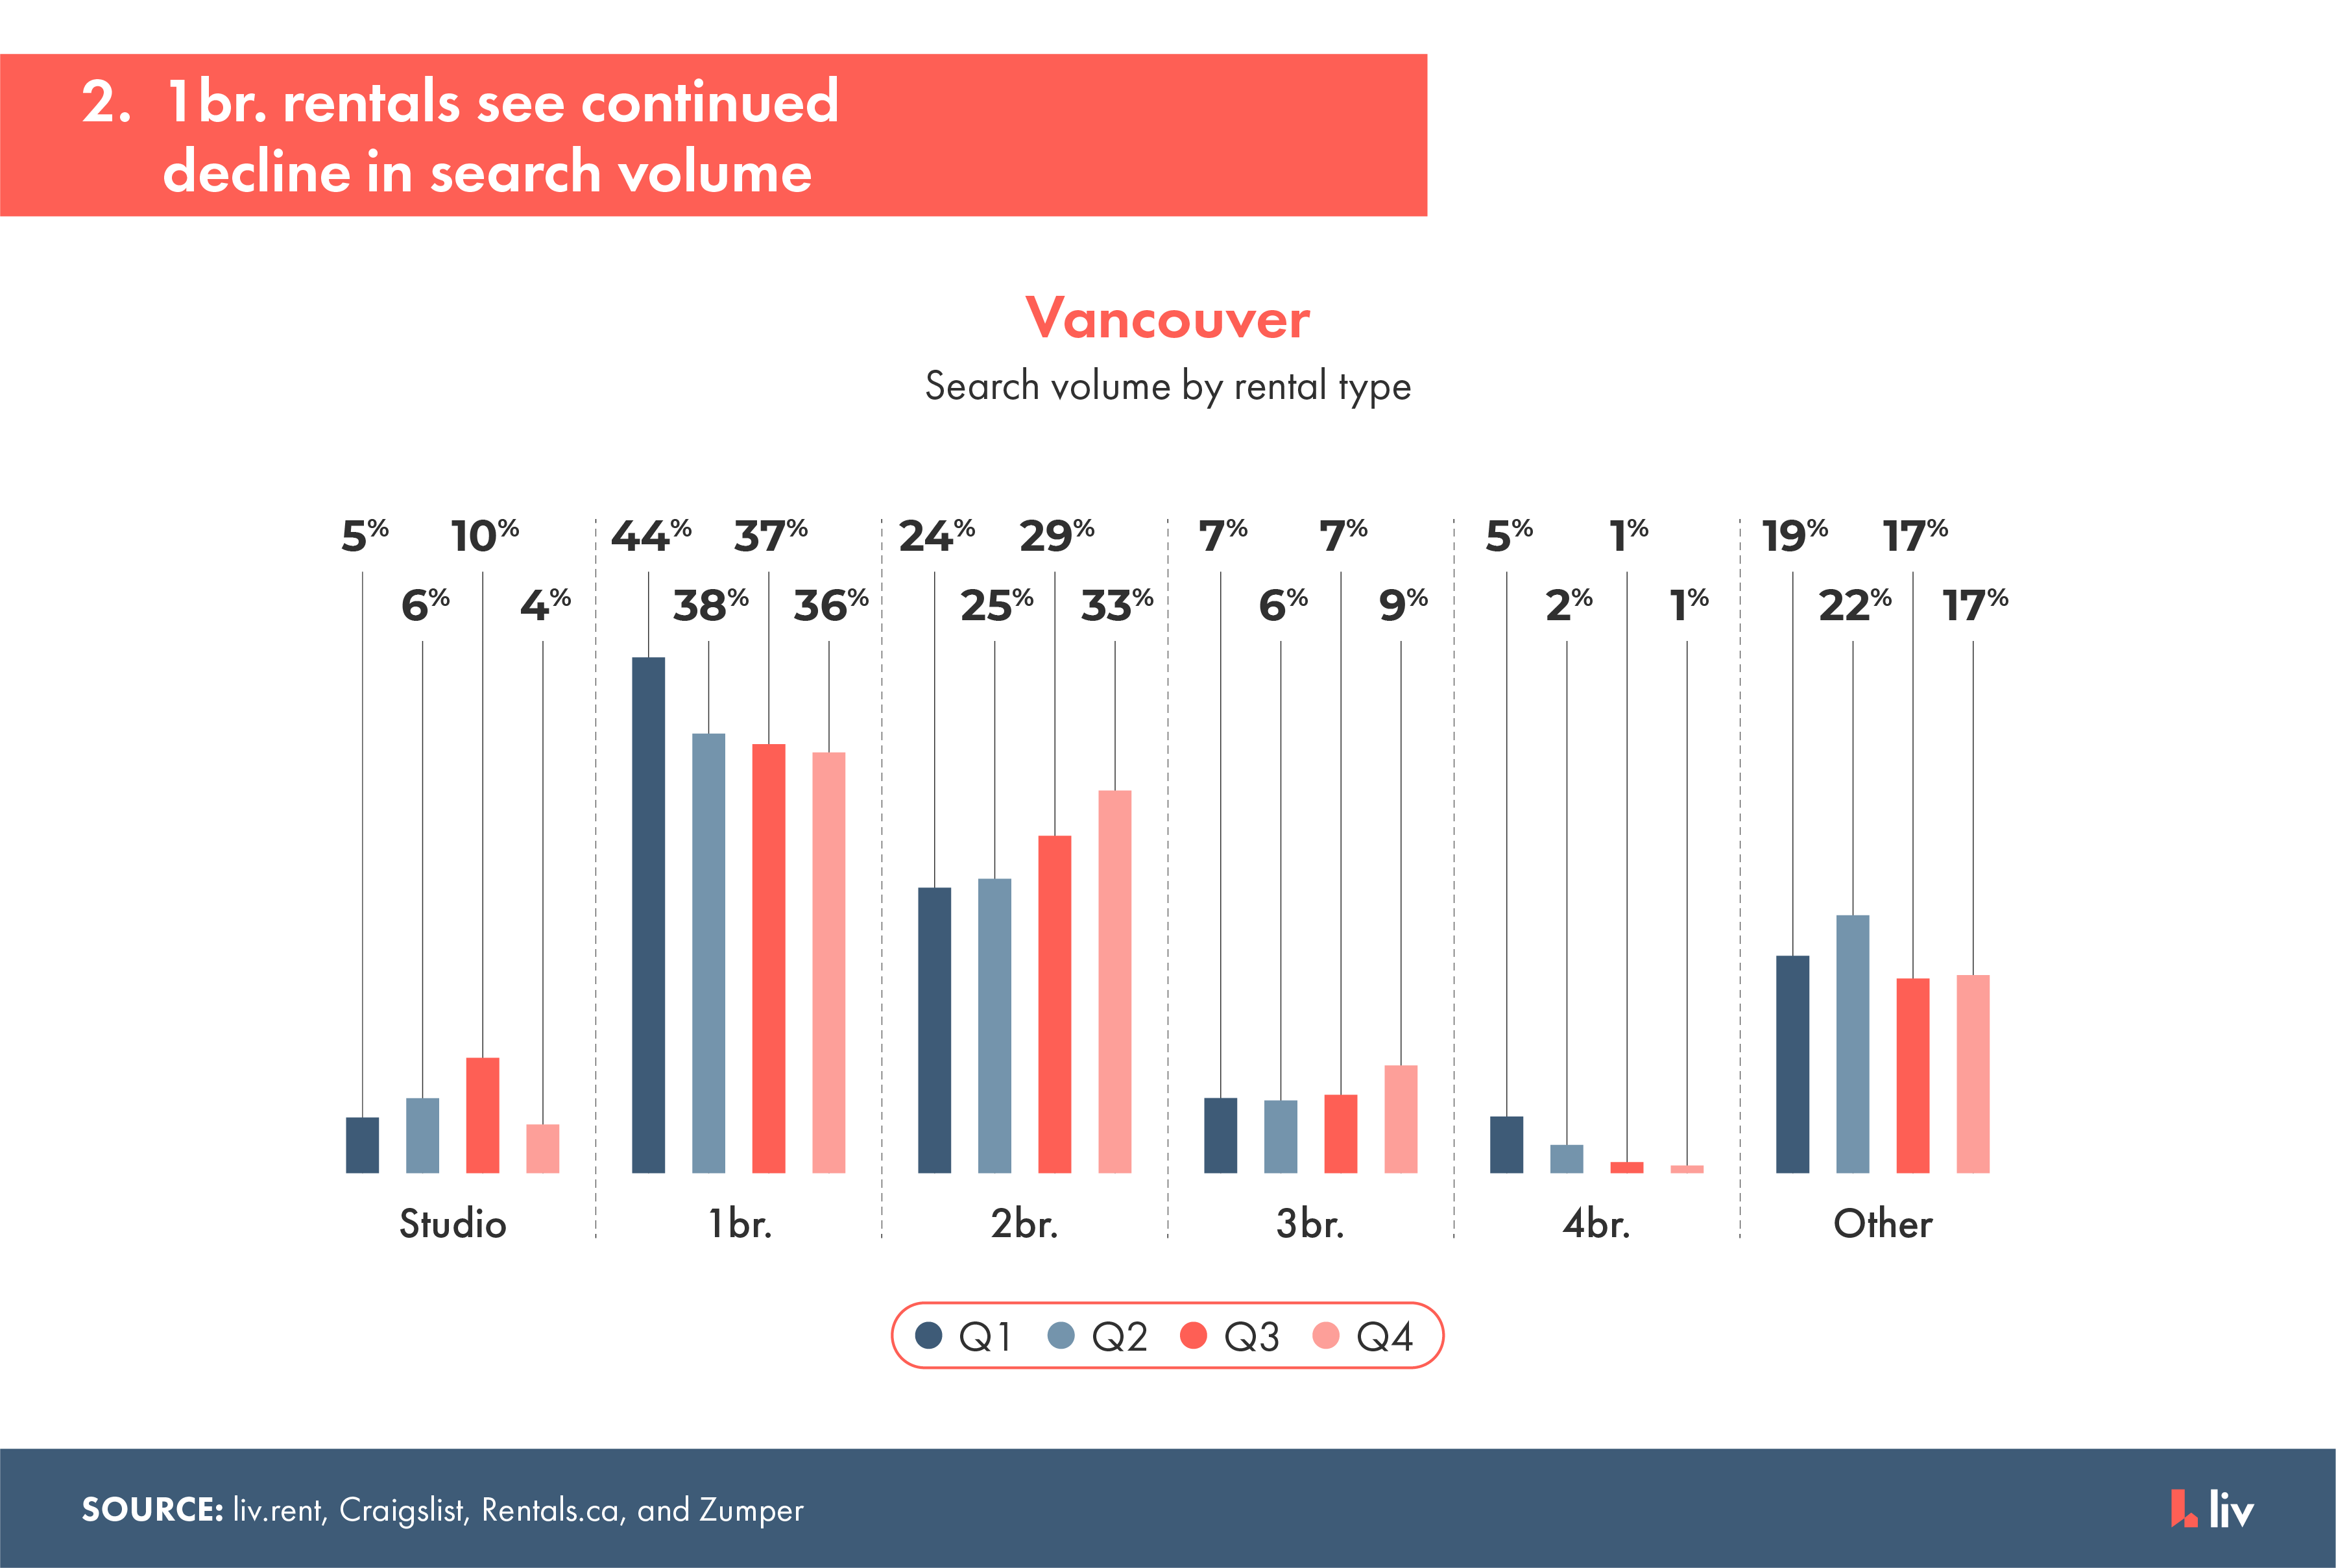 1 bedroom rentals in Vancouver saw the steepest decline in demand during 2020